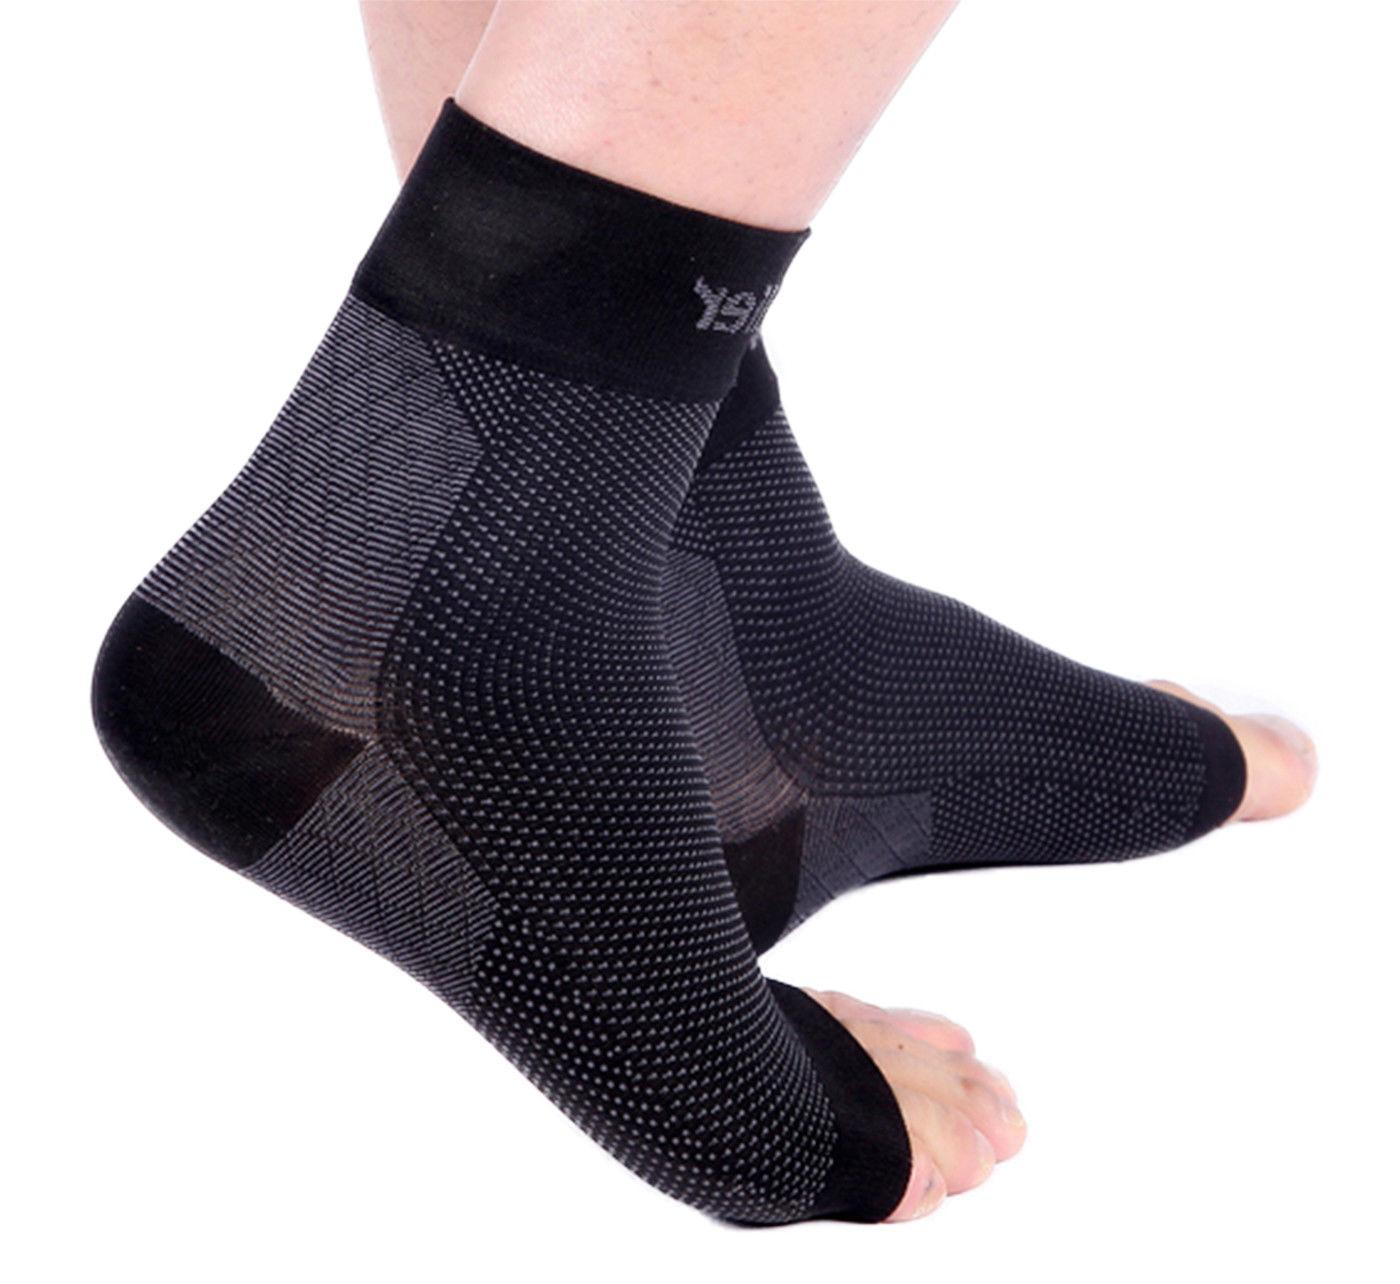 Doc Arch Support Compression Brace BLACK